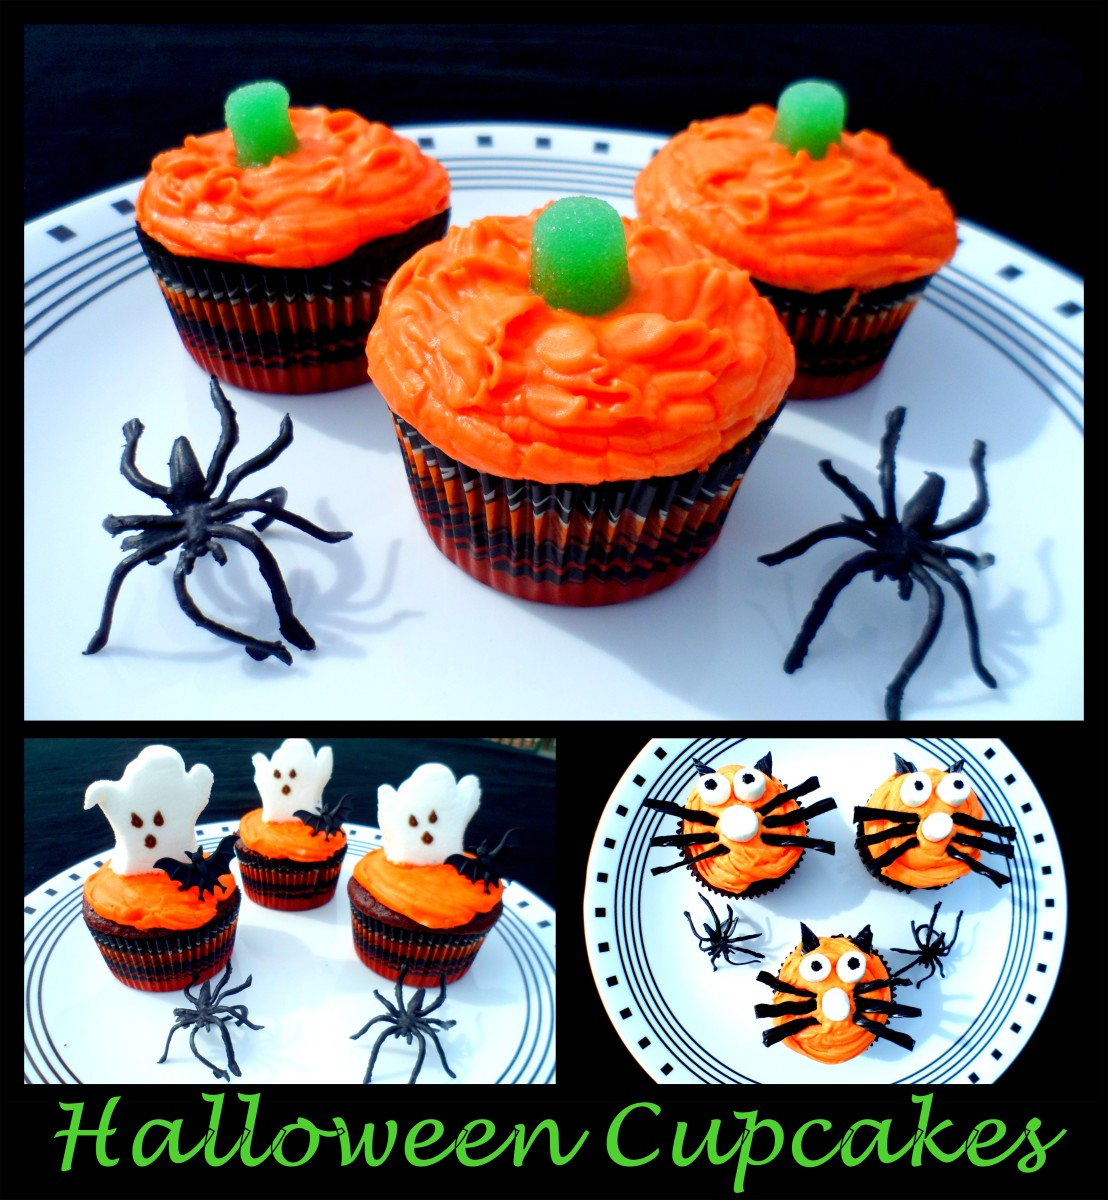 Halloween cupcakes cupcake decorating ideas hubpages Halloween cupcakes